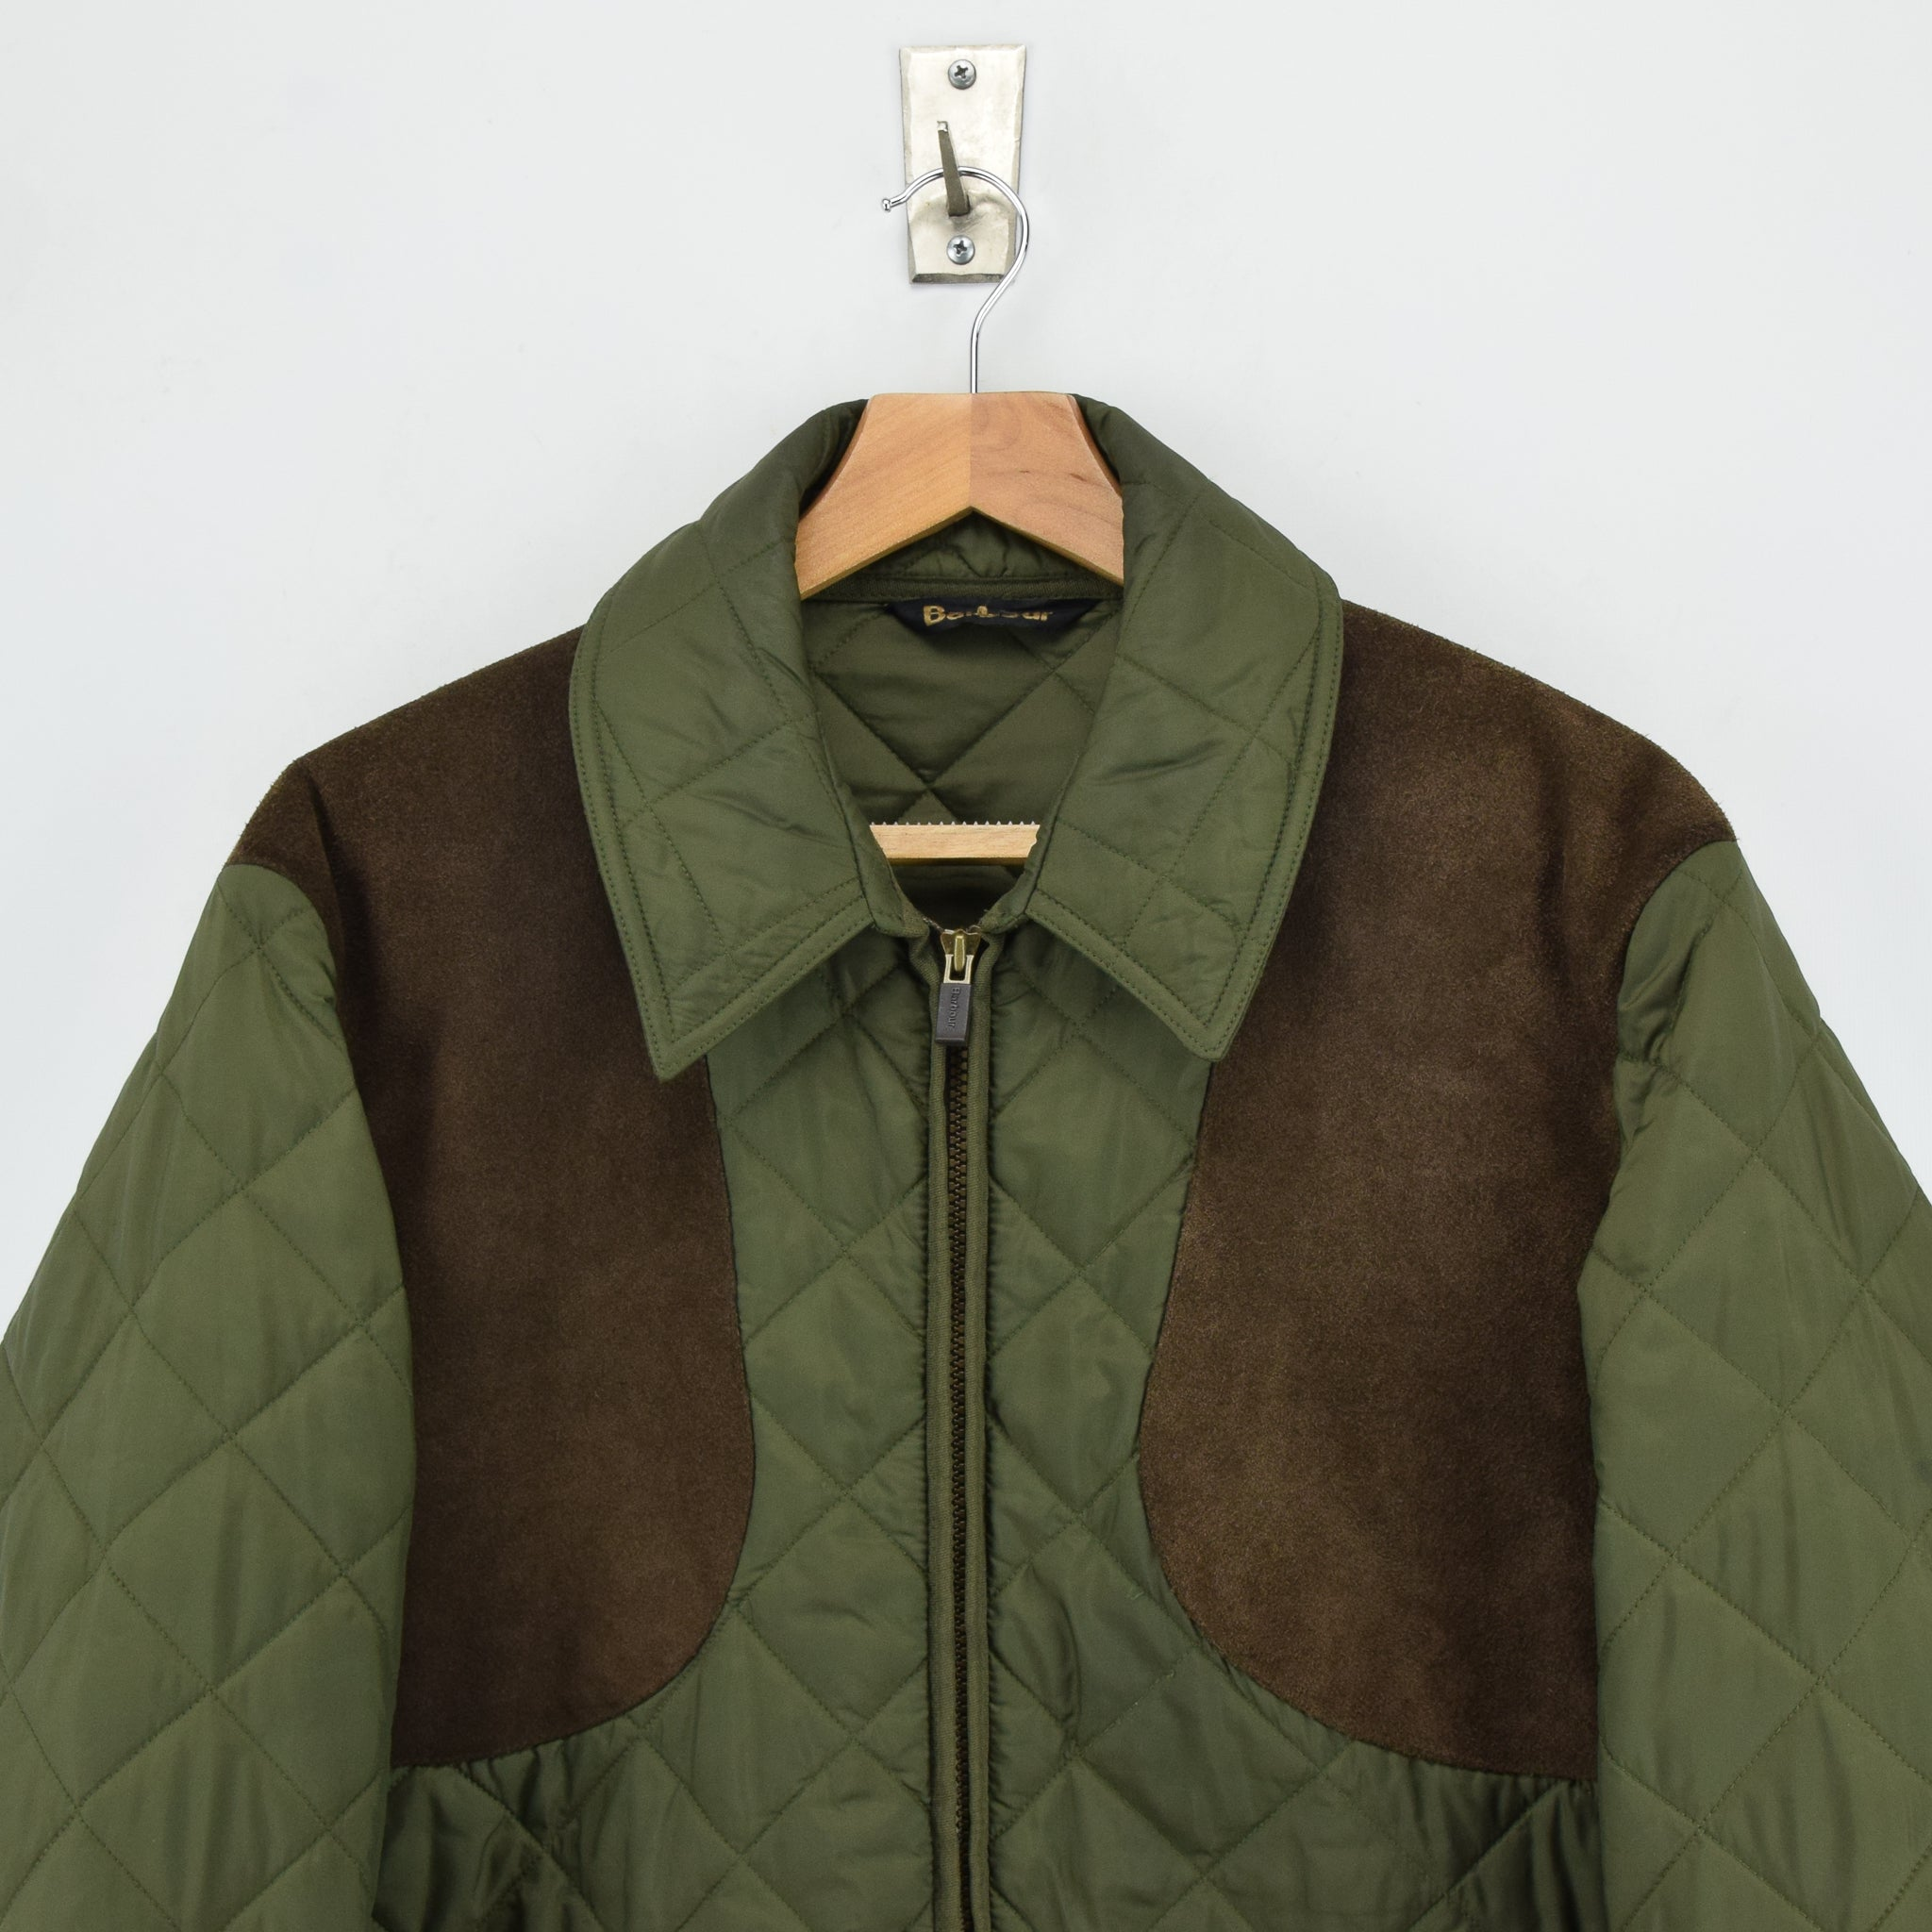 Barbour New Keeperwear Hunting Green Quilted Shooting Jacket Suede Patches M chest